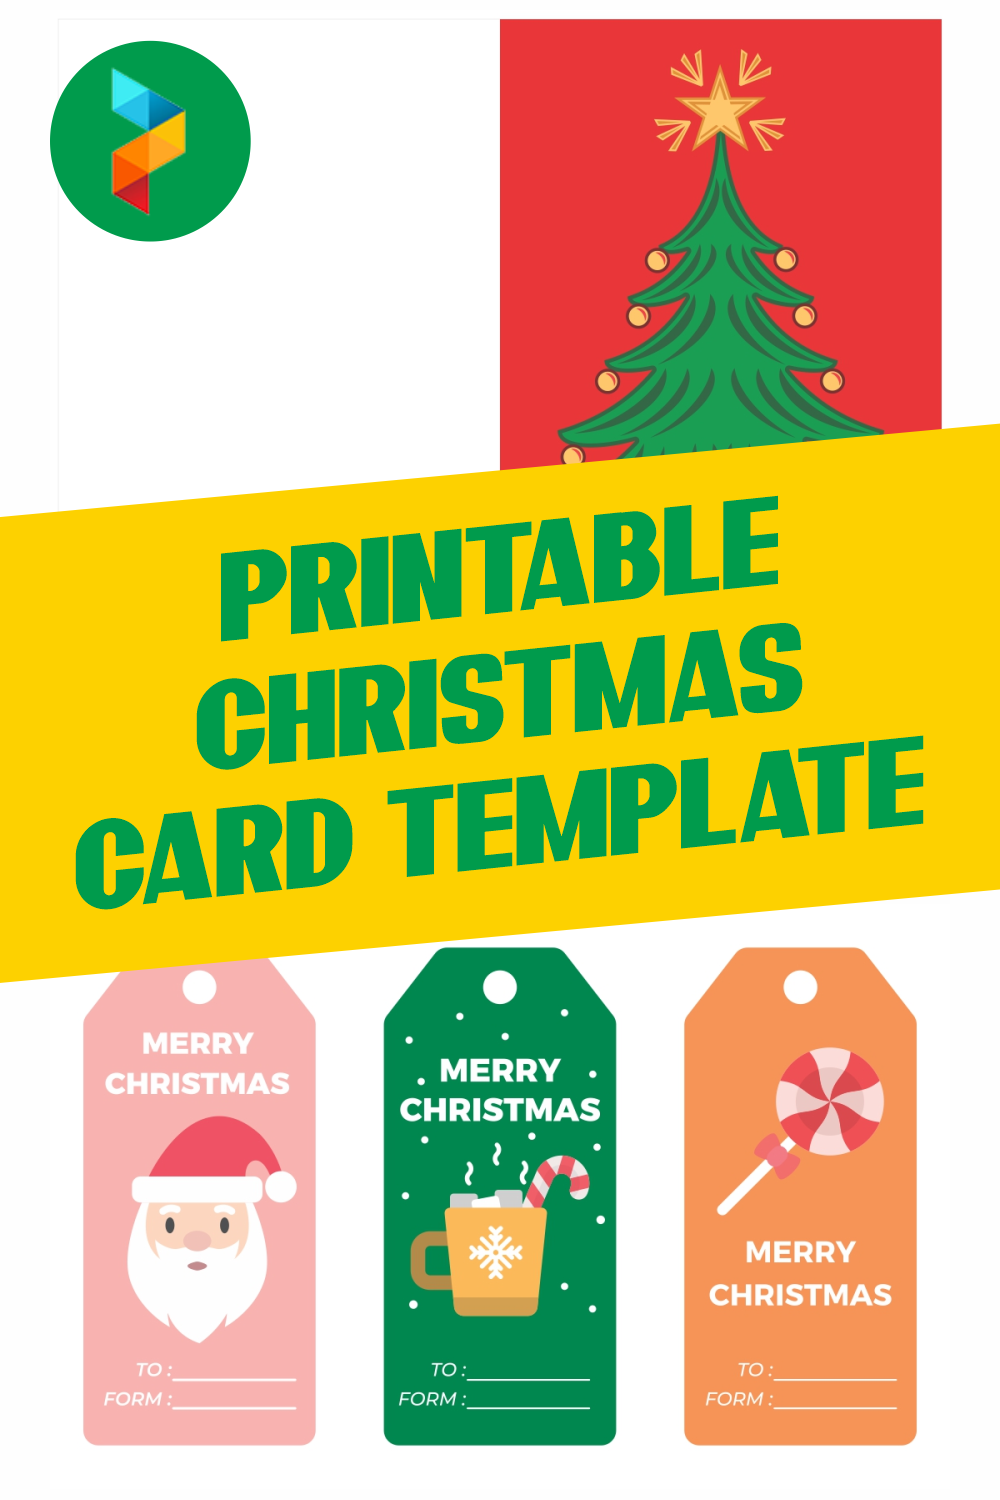 Printable Christmas Card Template